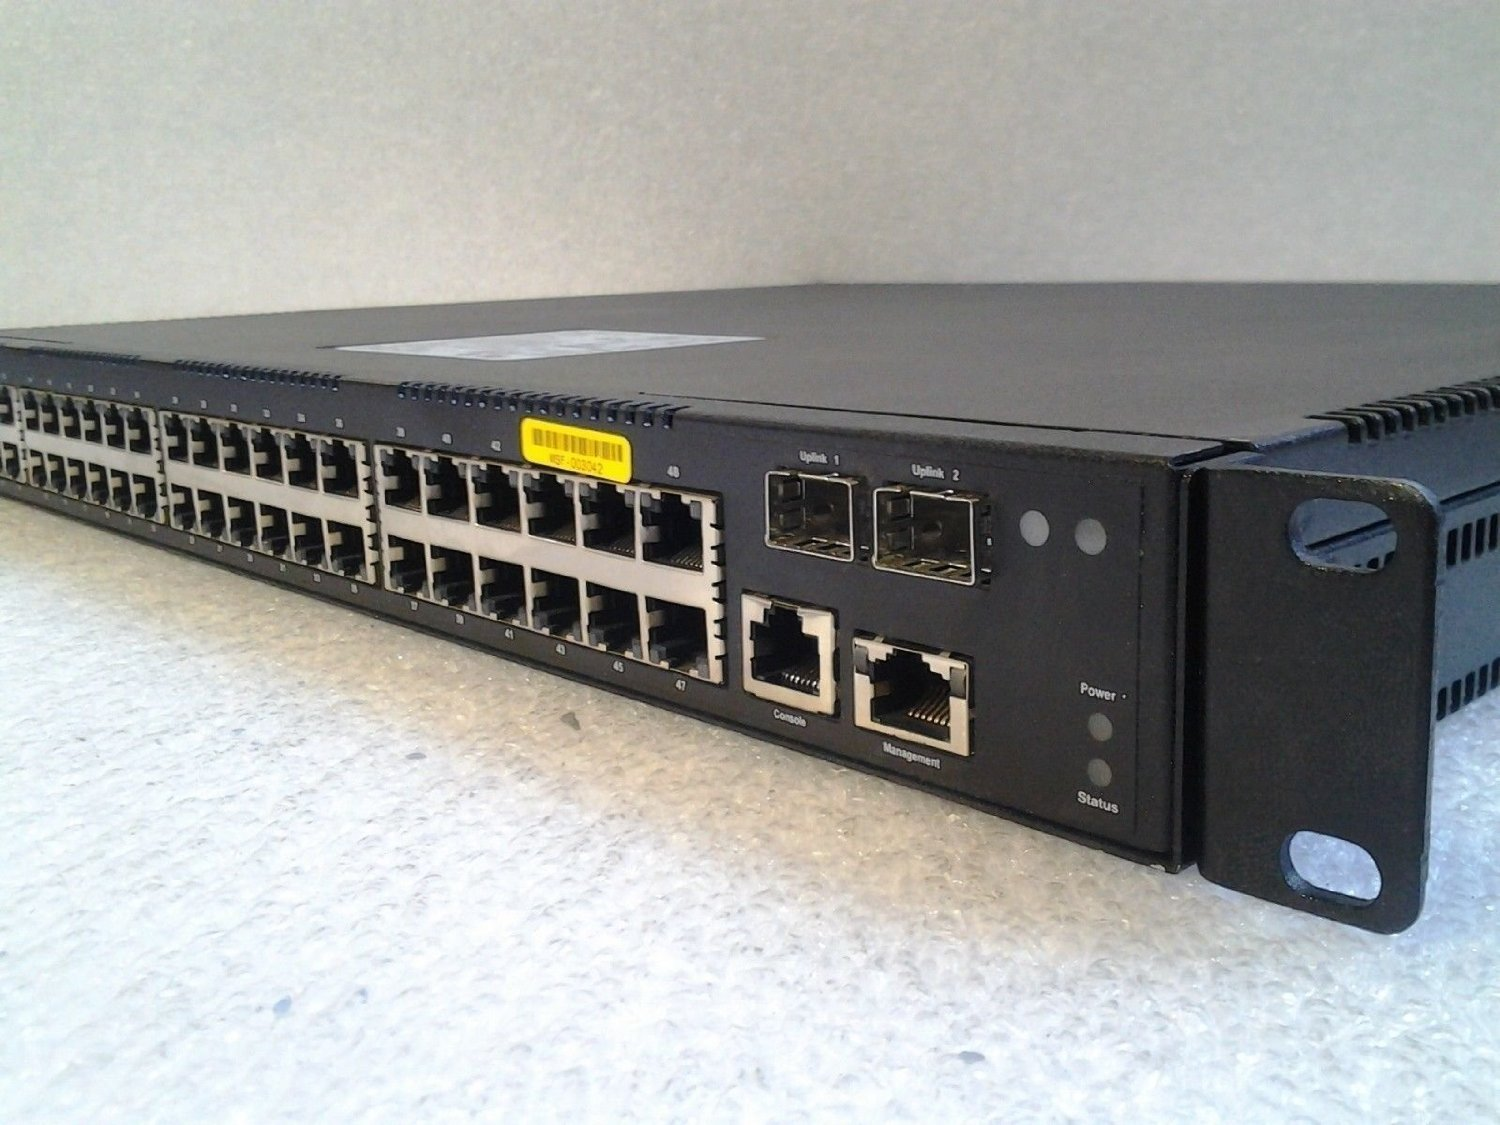 The Quanta Lb4m Cheap White Box Switching 4 Way Ethernet Switch